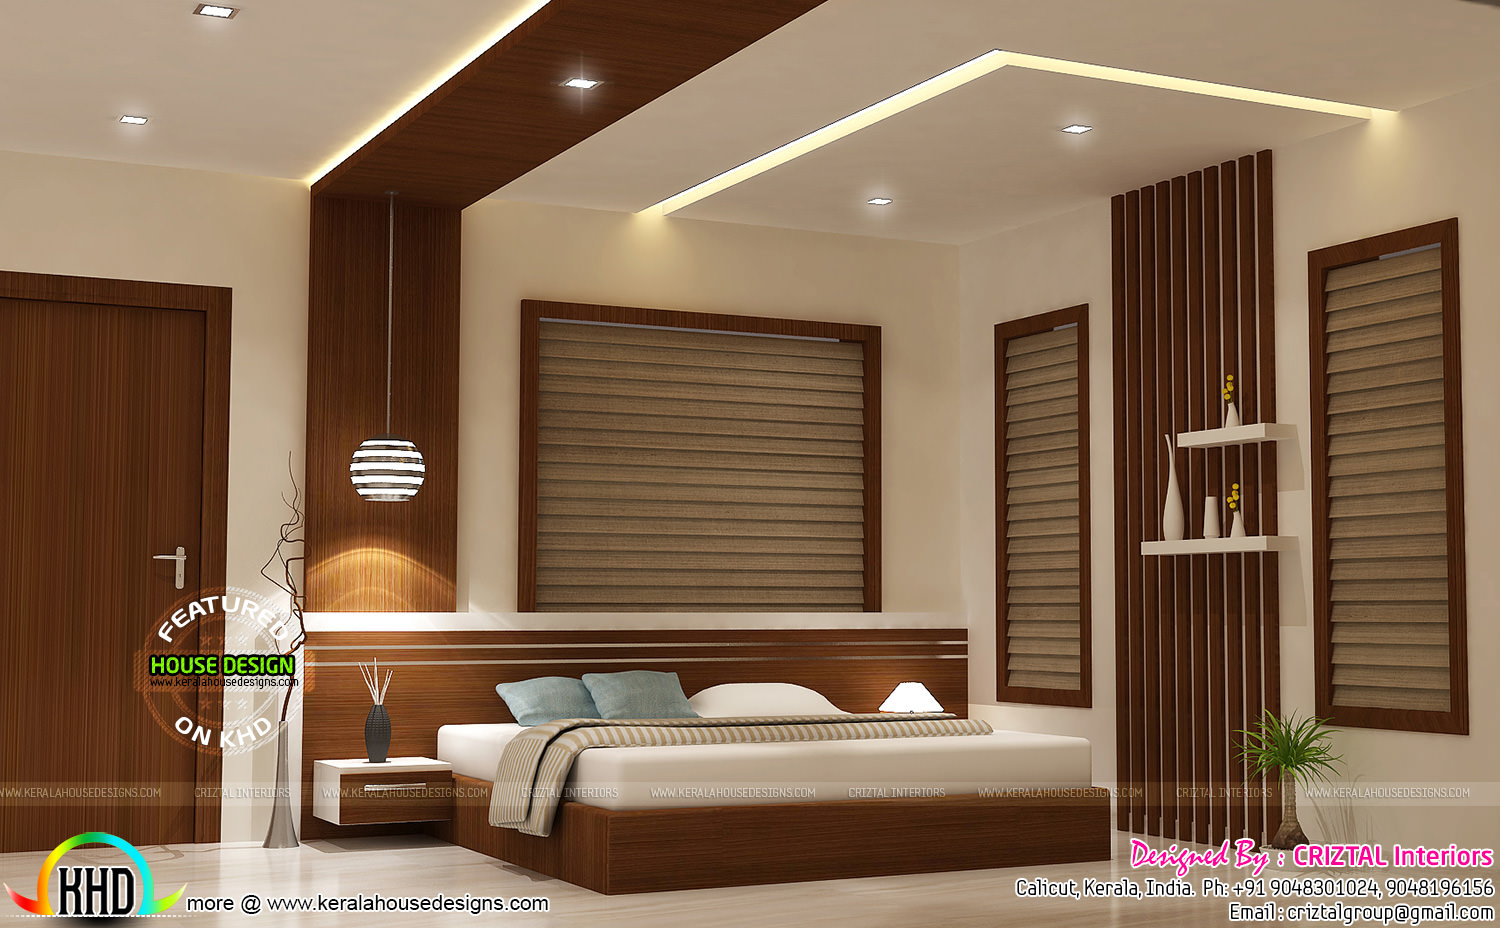 Bedroom dining hall and living interior kerala home for Interior designs in kerala